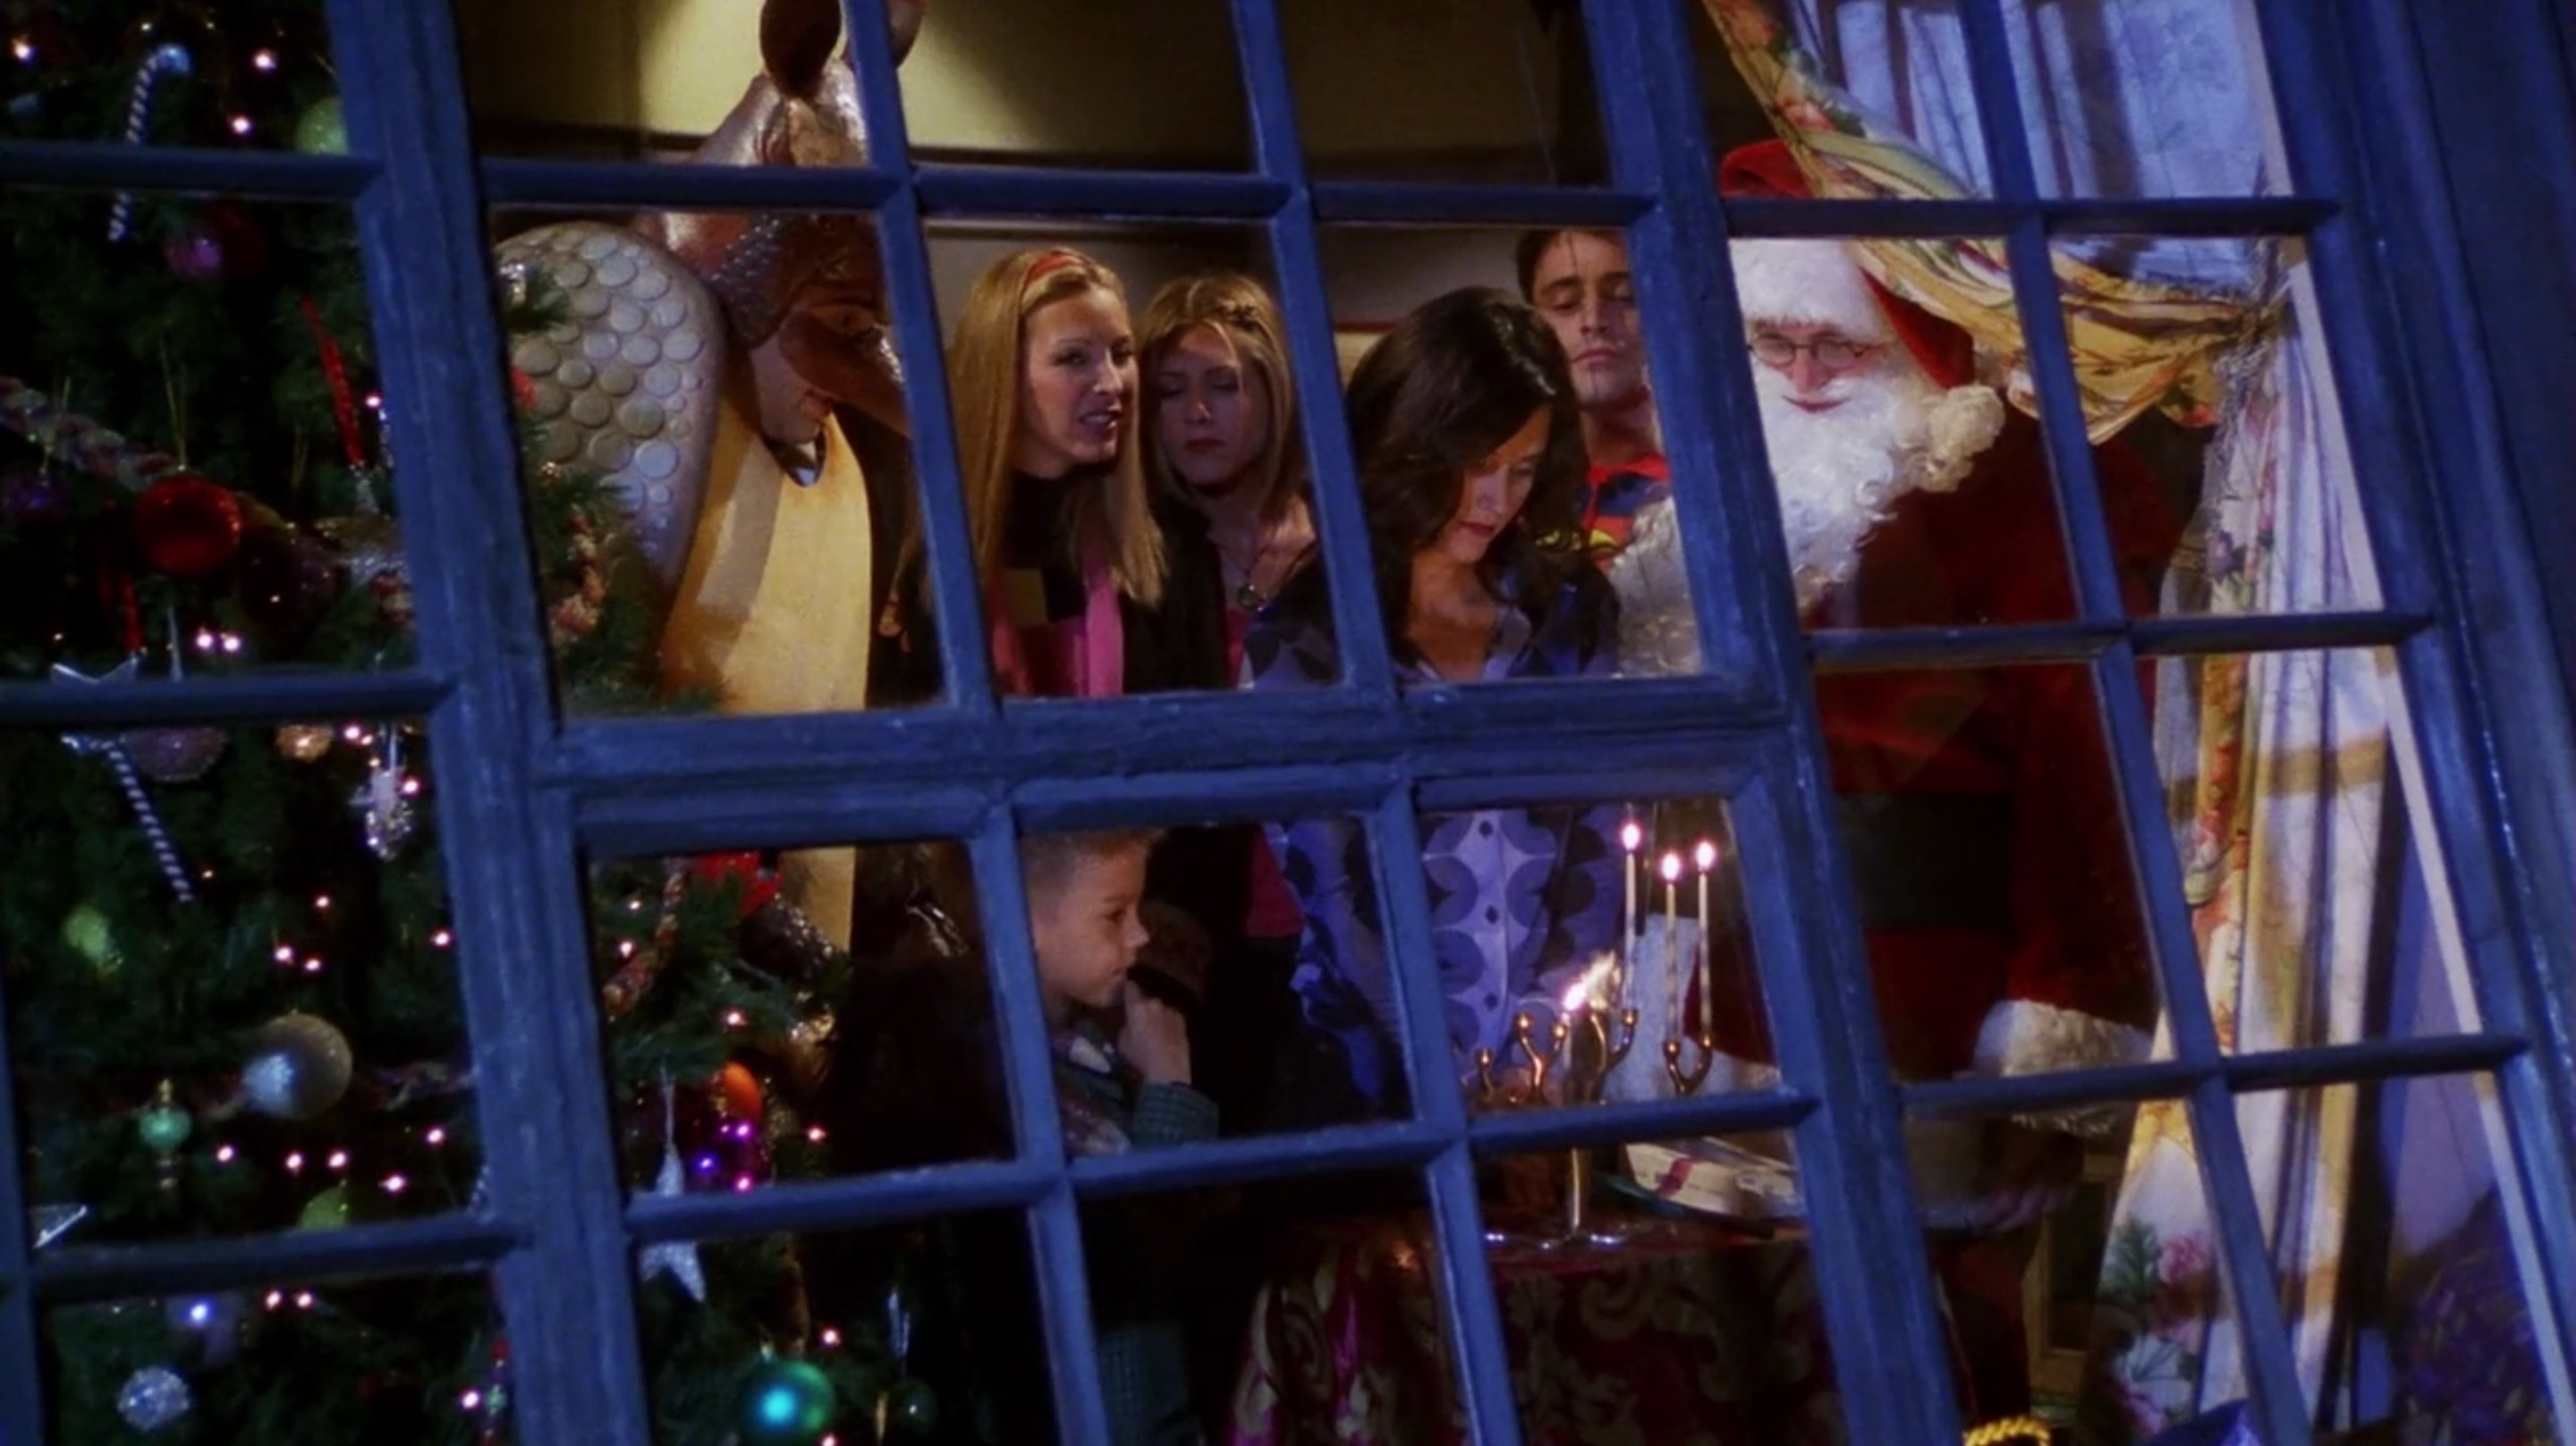 Friends Christmas Episodes.9 Christmas Episodes Of Friends To Get You In The Holiday